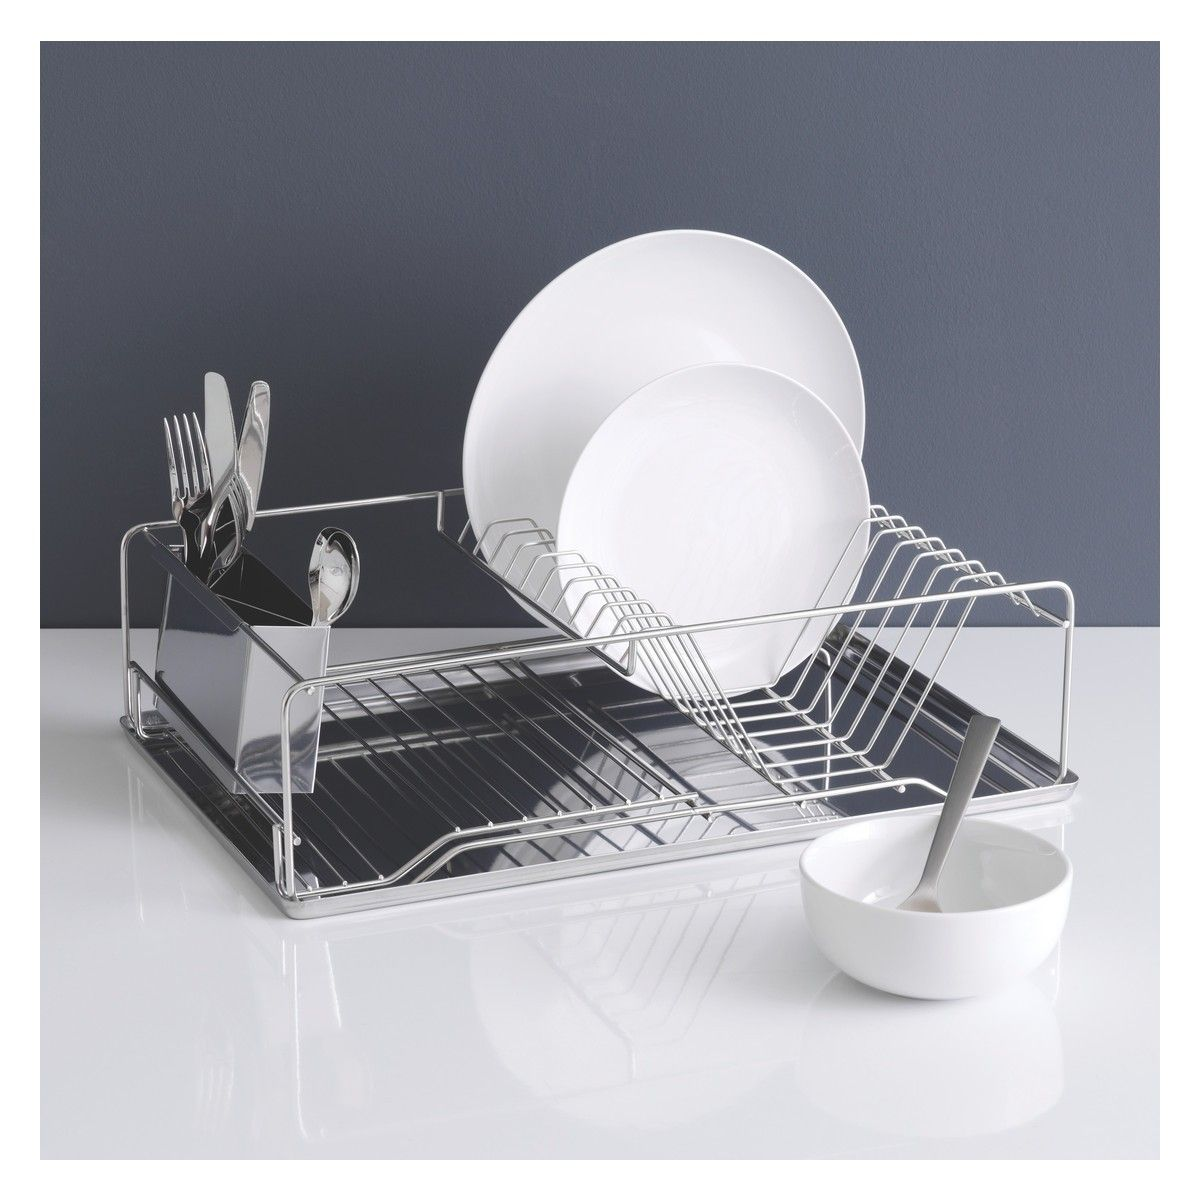 Sabatier Dish Rack Enchanting Decker Stainless Steel Single Level Dish Drainer  Dish Drainers Design Ideas